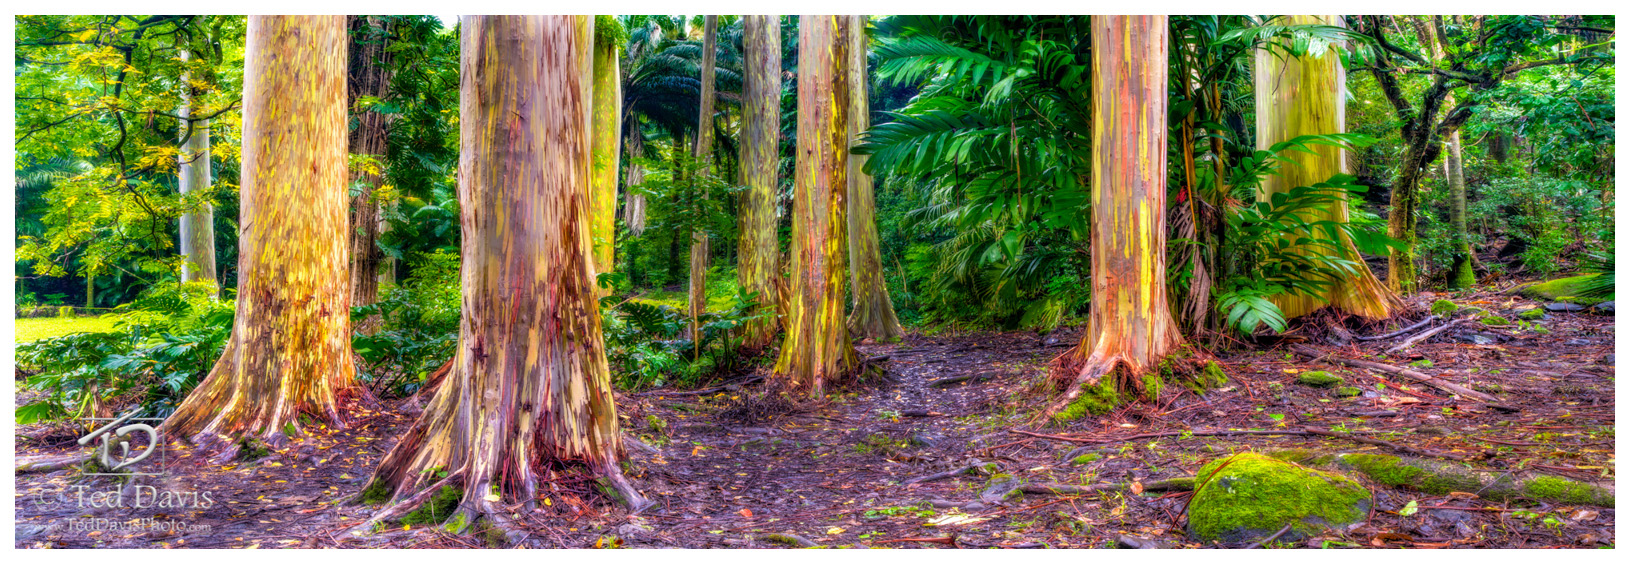 maui, hawaii, eucalyptus, chroma, trip, rainbow, islands, trees, vibrant, color, photograph, beautiful, hana, road to hana, arboretums, gardens, botanical, otherwordly